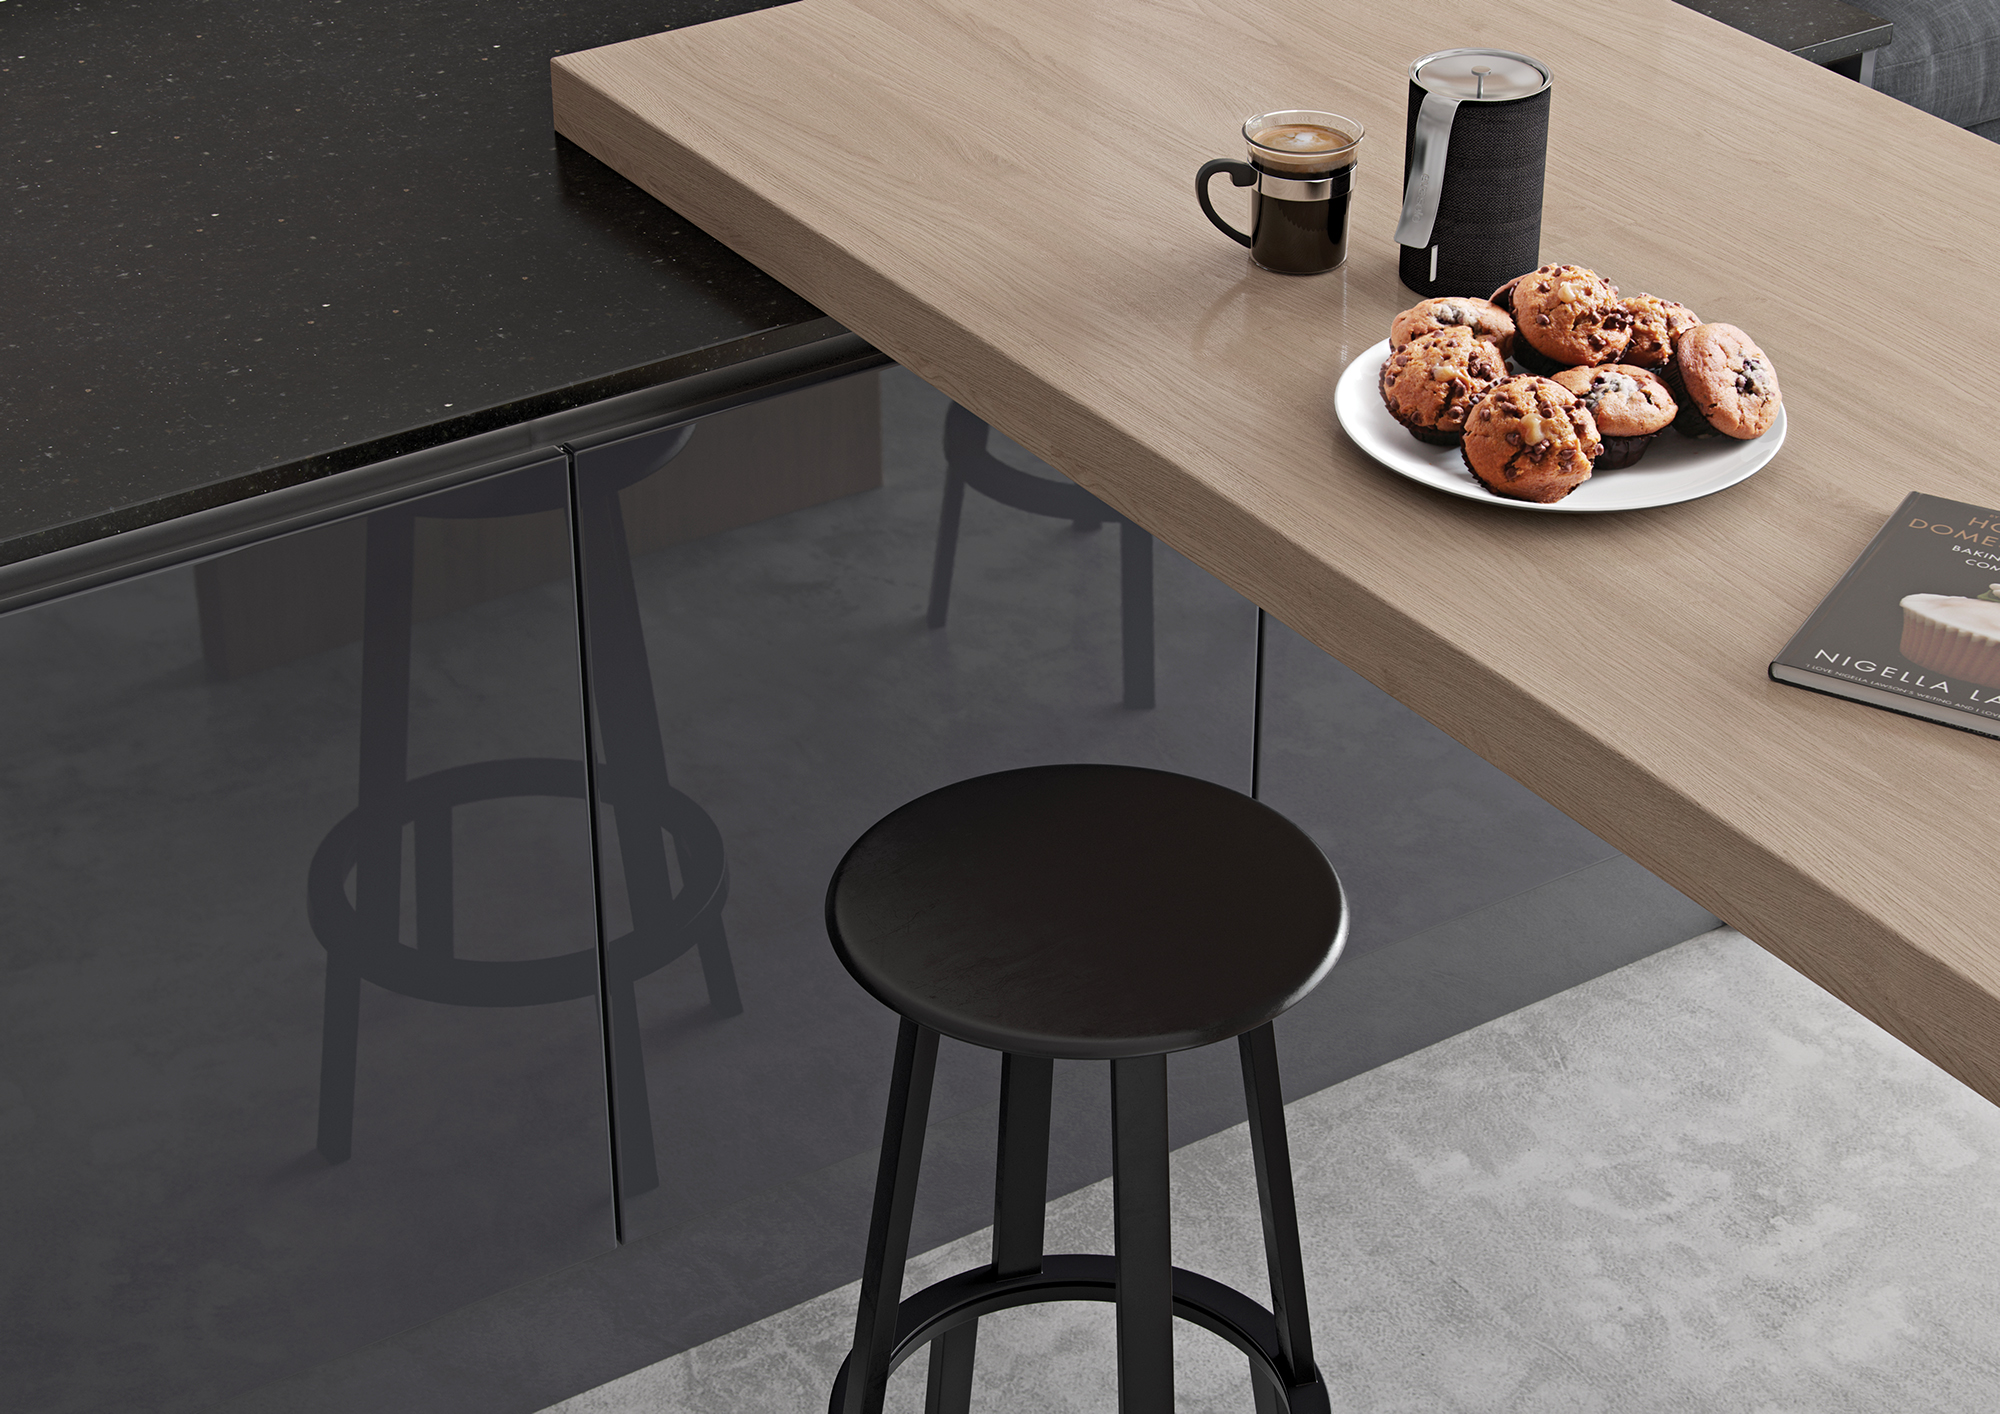 Cerney Gloss Handleless Graphite Cameo 2, from Riley James Kitchens Stroud